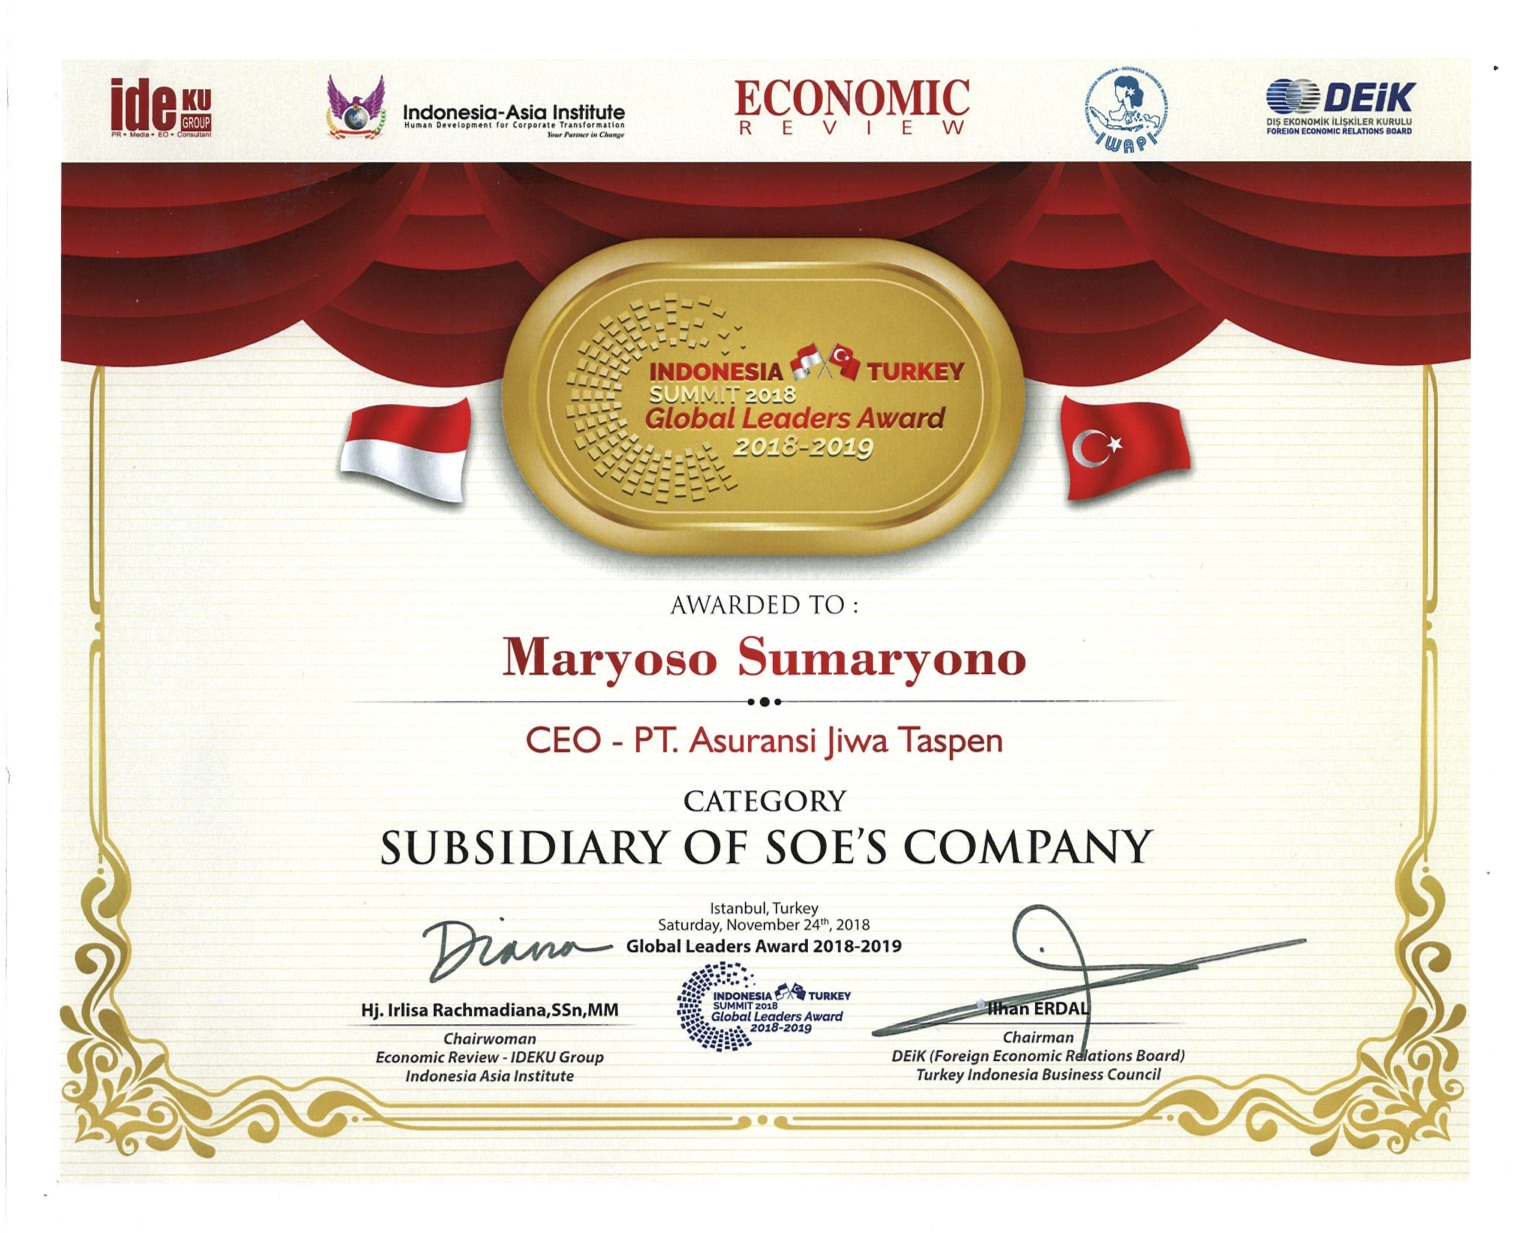 CEO SOE Company Indonesia Turkey Summit Global Leaders Award 2018